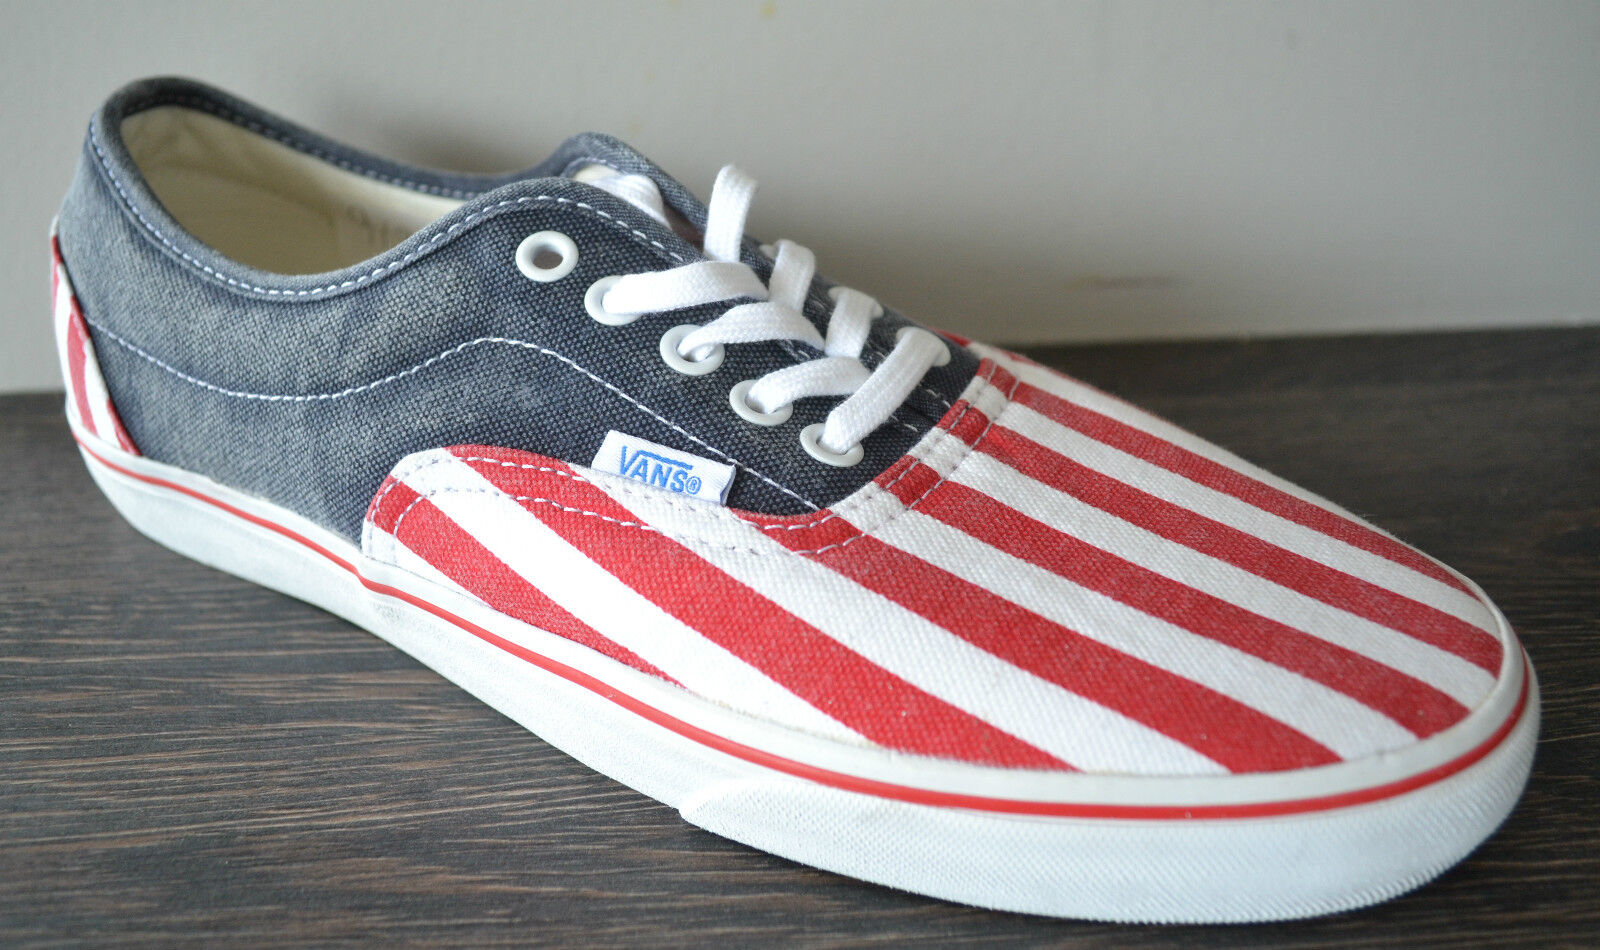 Vans Unisex LPE CA (Washed) (Washed) (Washed) Red / White/ Blue  Canvas L9R5Q8 a14b89